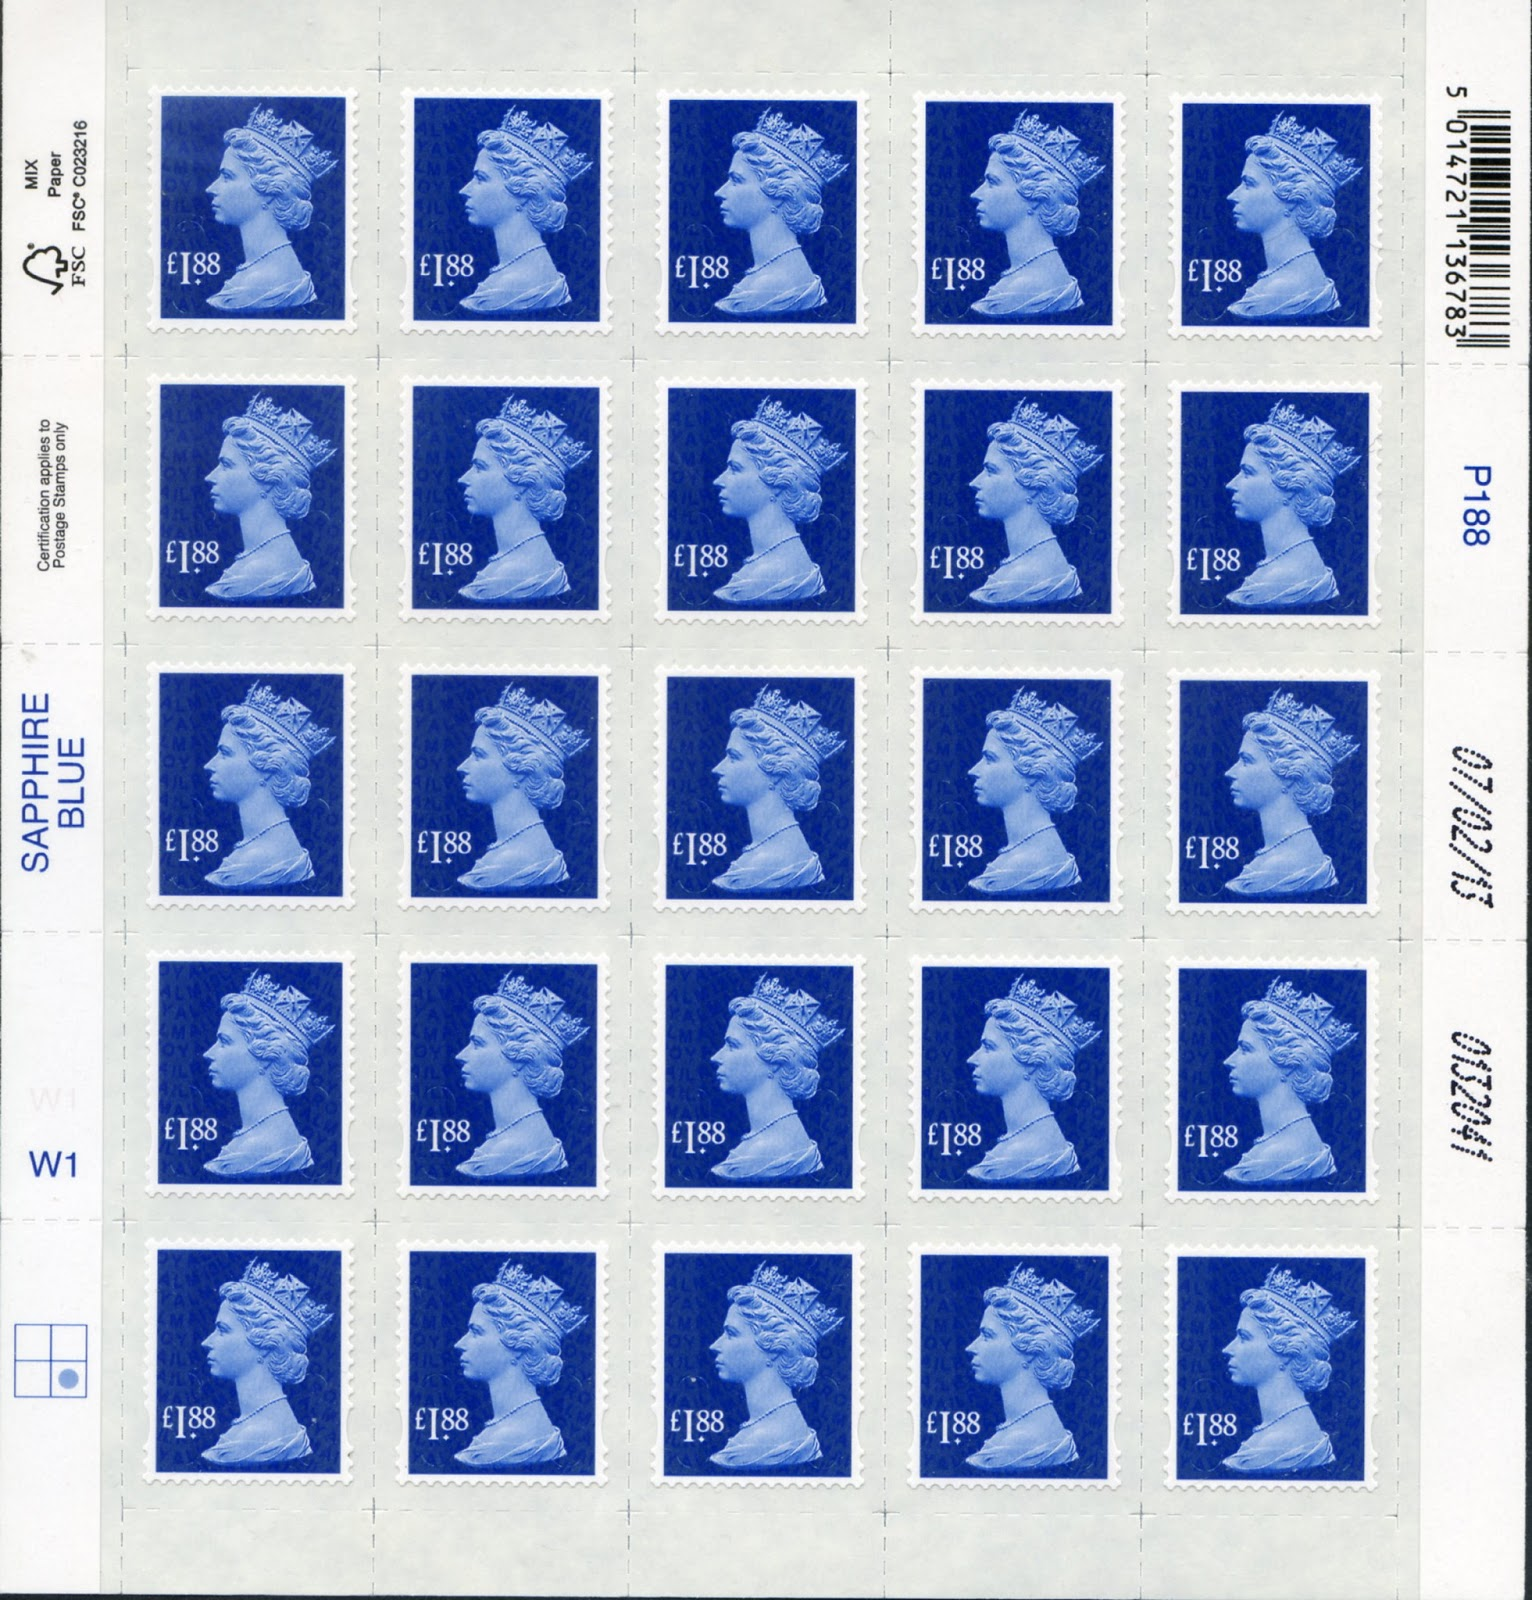 picture about Printable Stamps called Norvic Philatelics Web site: 27 March Clean Tariff Machin and